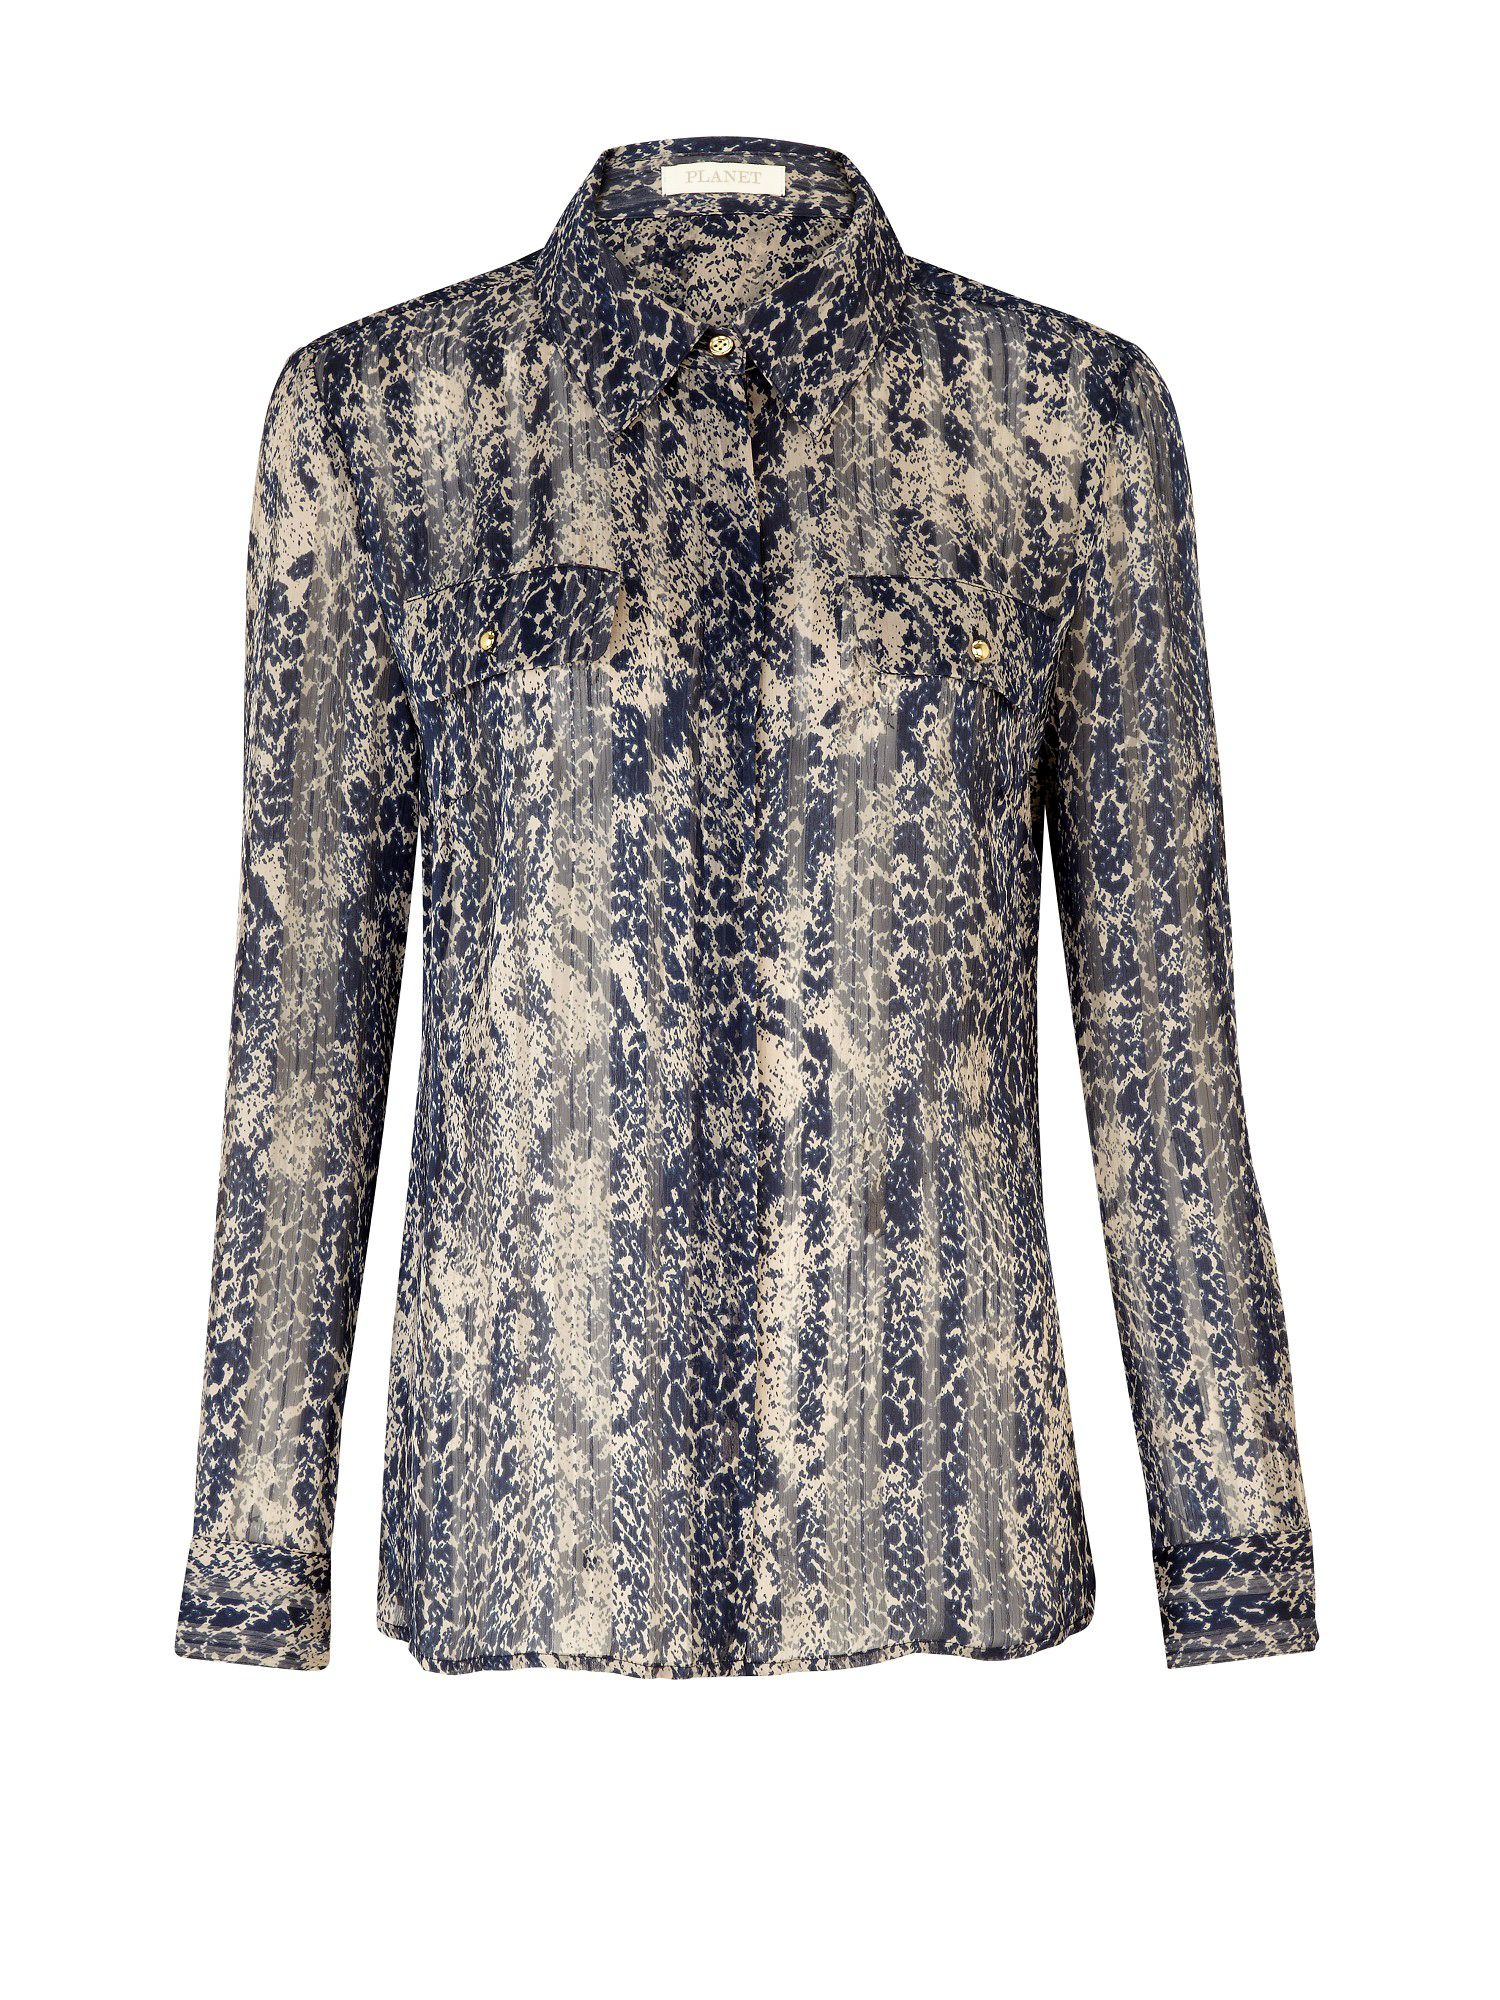 Planet Womens Planet Snake print utility blouse, product image